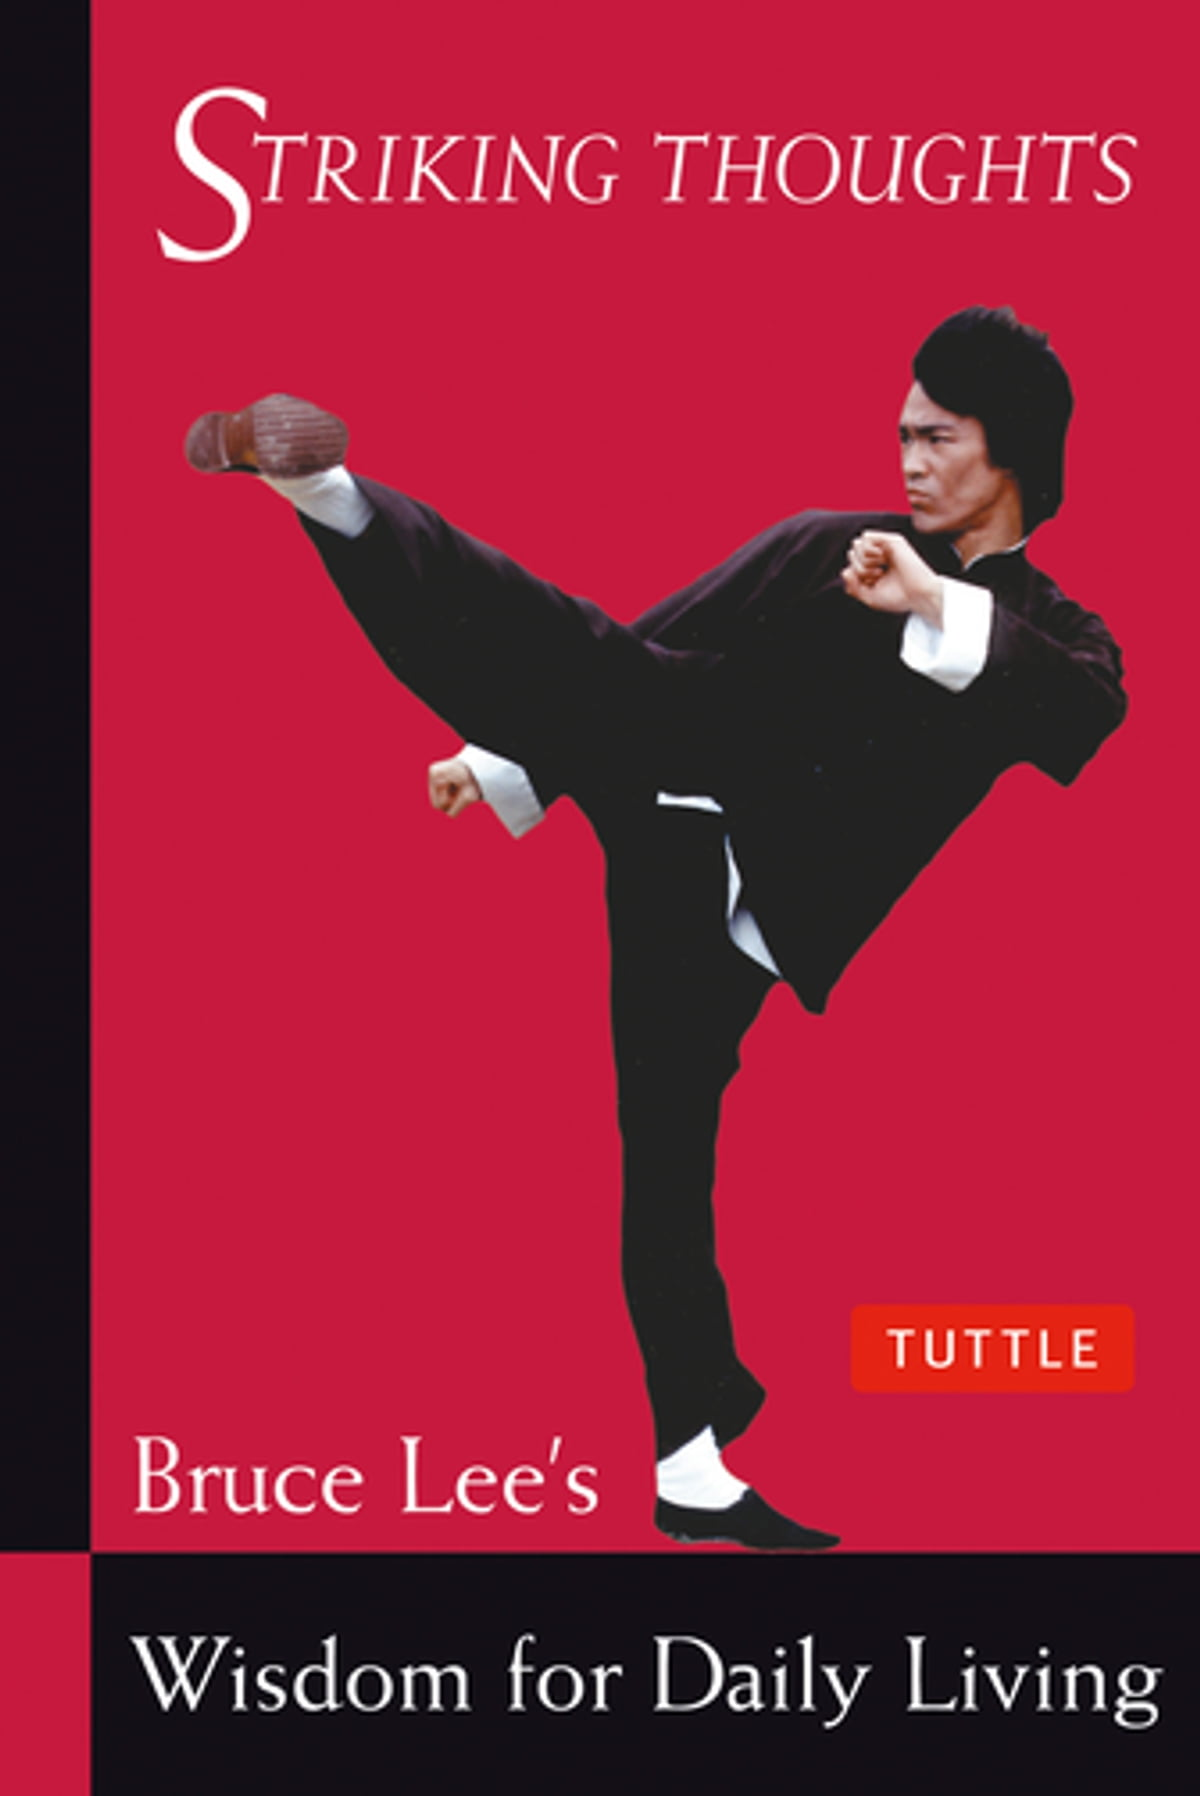 Bruce Lee Striking Thoughts Ebook By Bruce Lee  9781462917921  Rakuten  Kobo